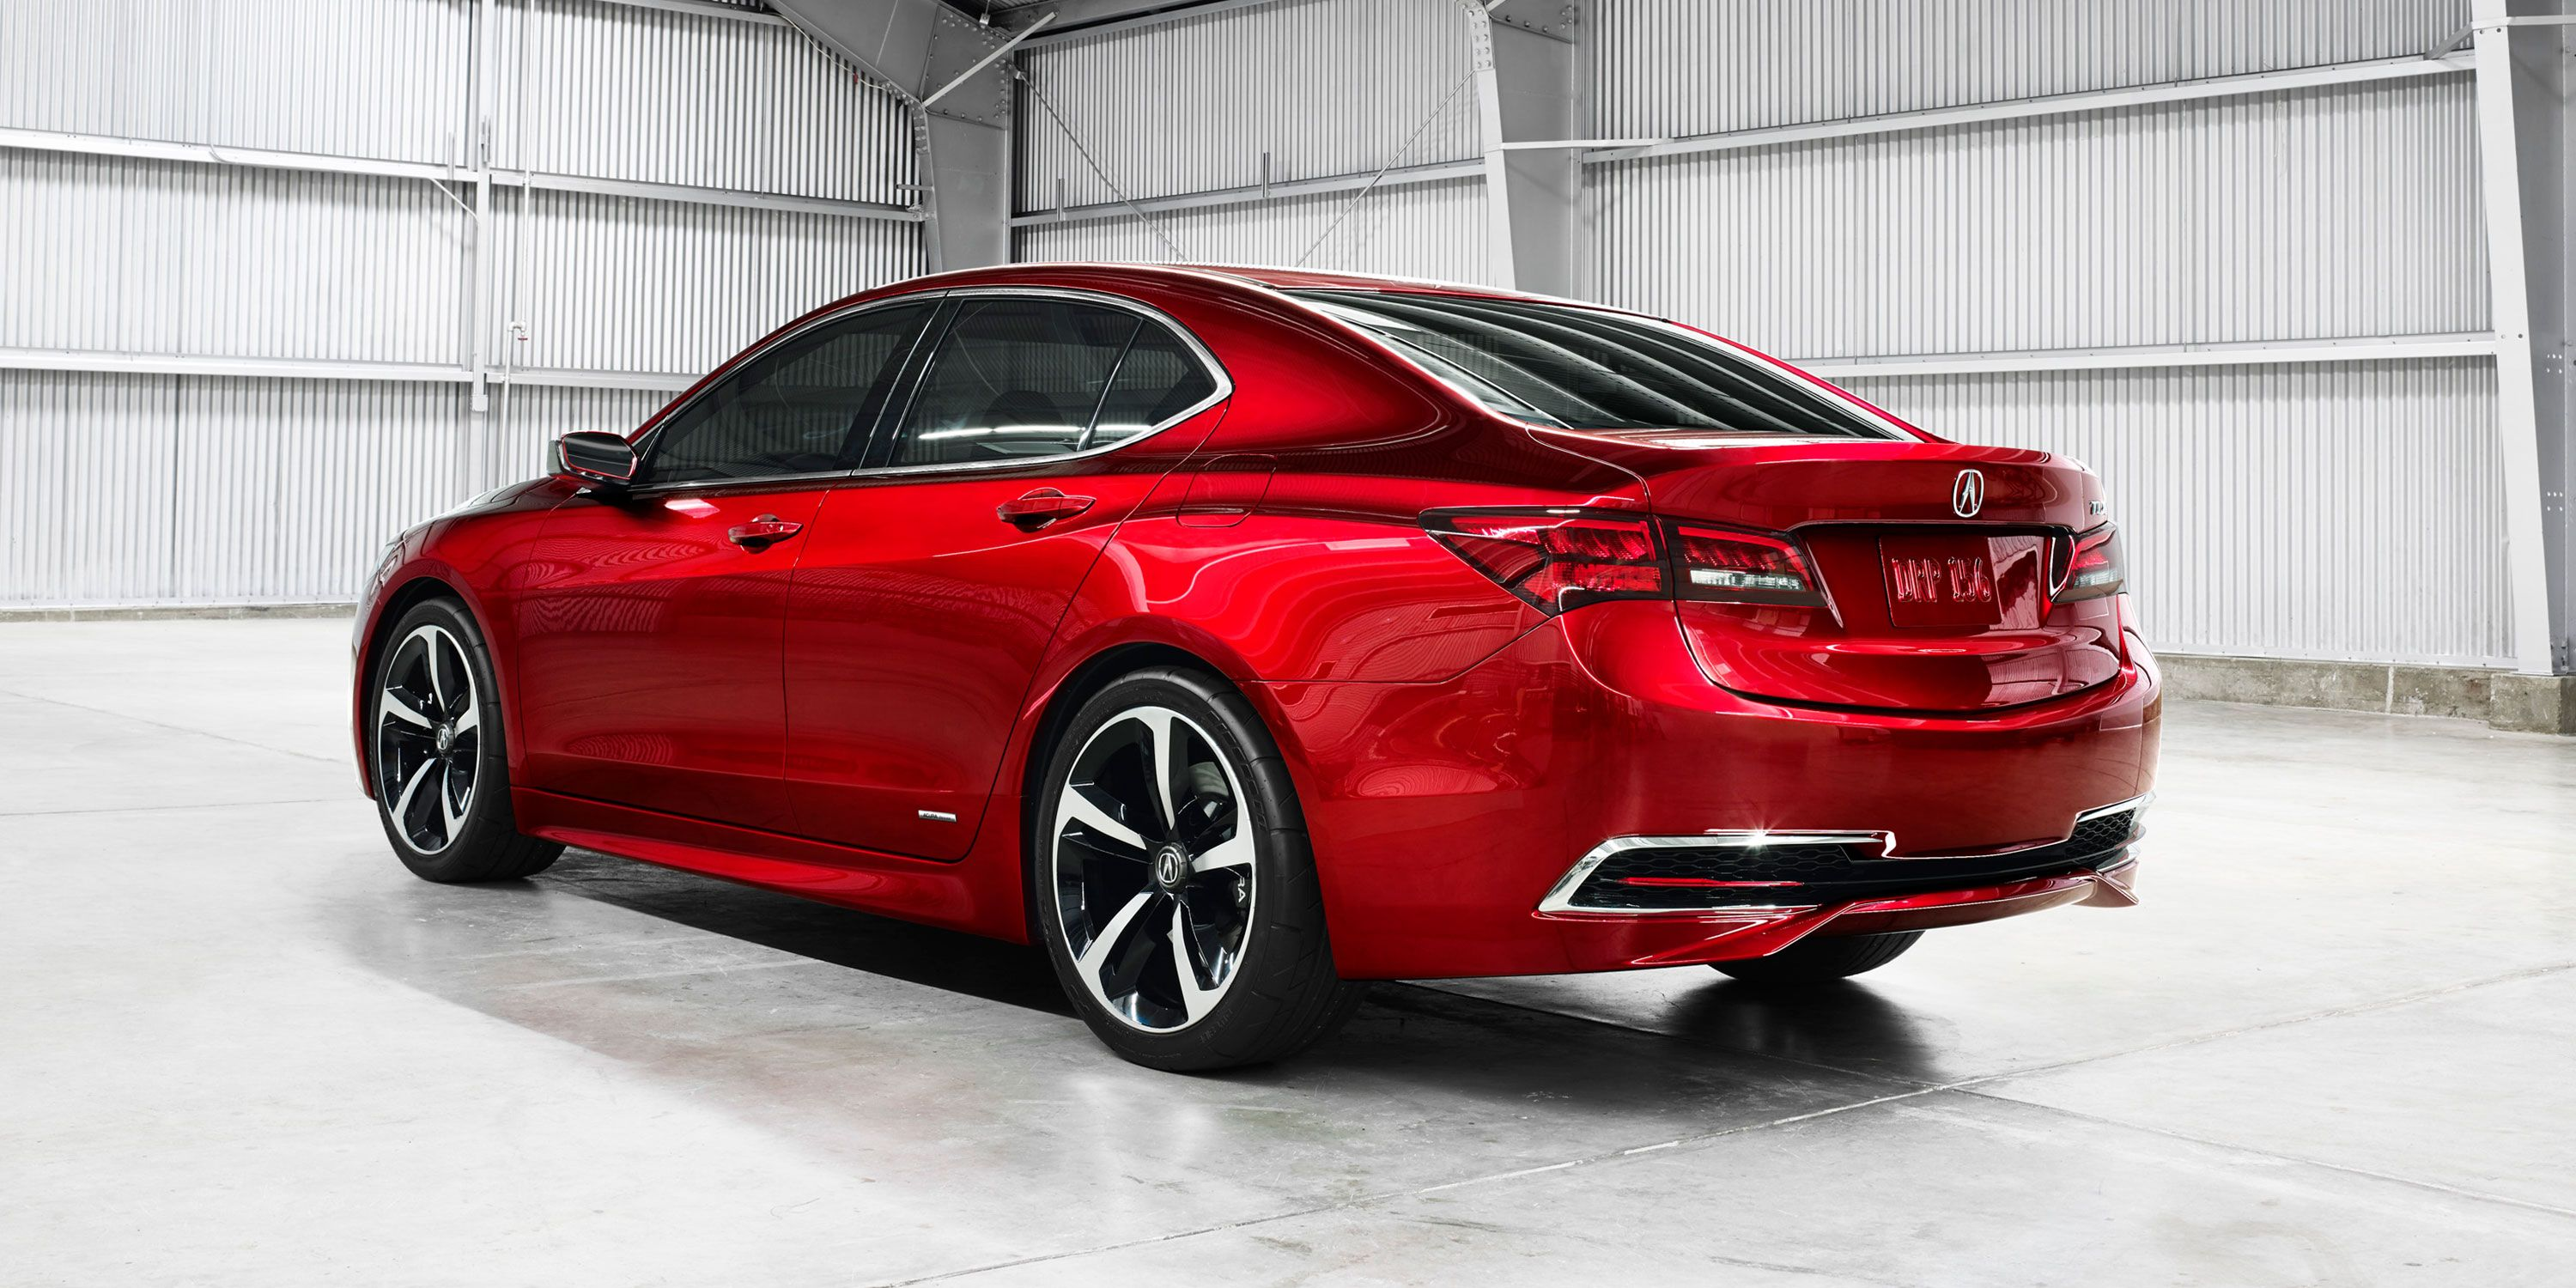 New Acura Tlx For Sale In St Louis Modelos De Carros Autos Coches